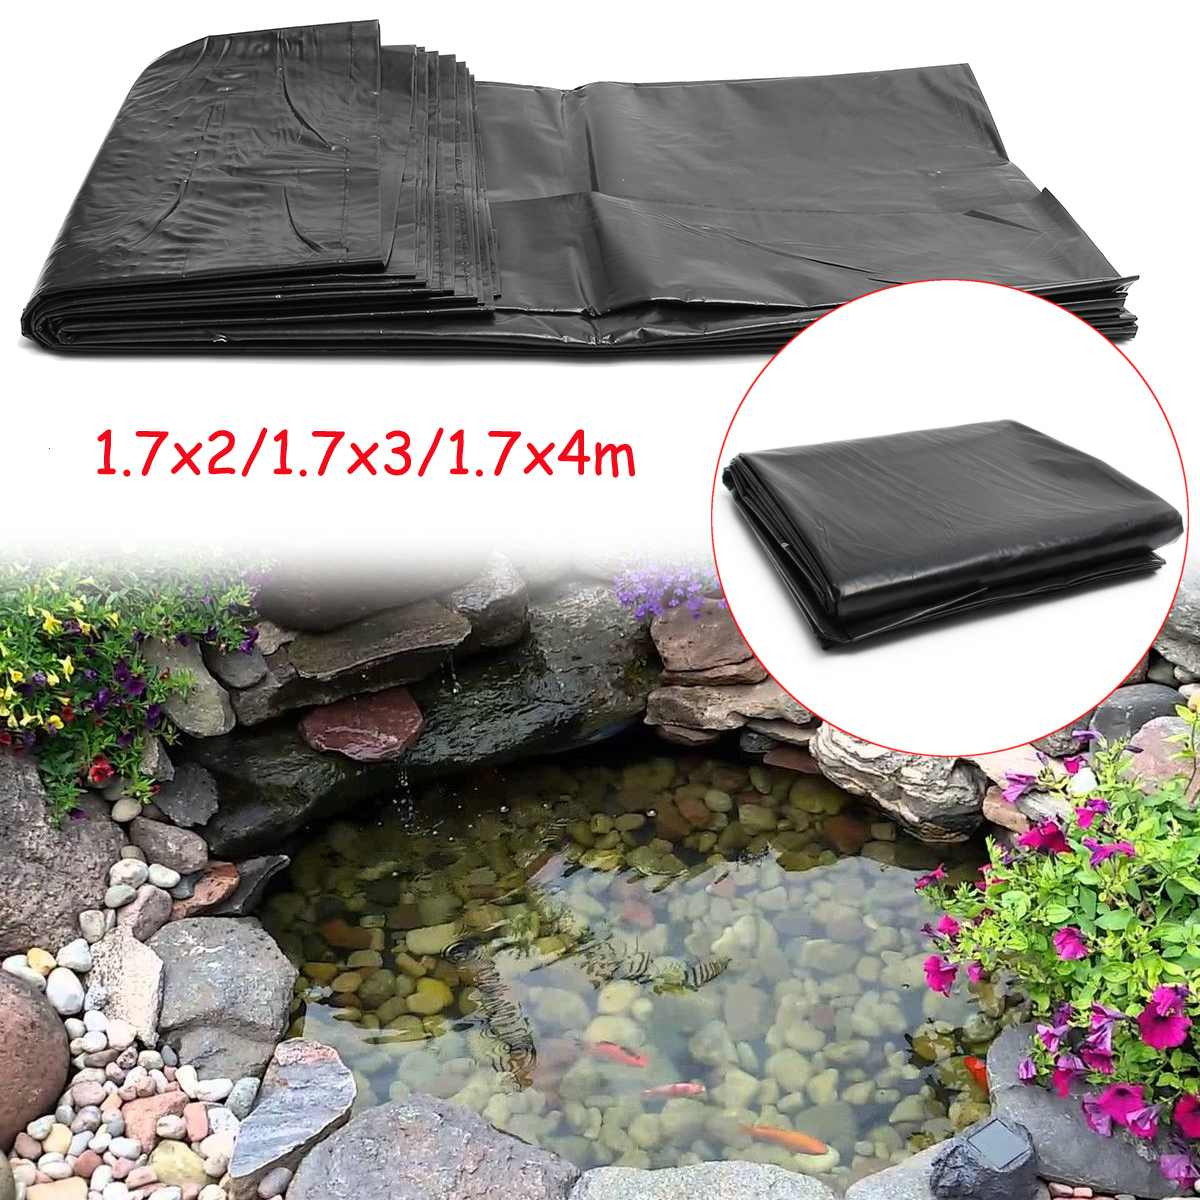 HDPE Fish Pond Liner Garden Pond Landscaping Pool Rubber Thick Heavy Duty Waterproof Membrane Liner Cloth 1.7x4m/1.7x3m/1.7x2m title=